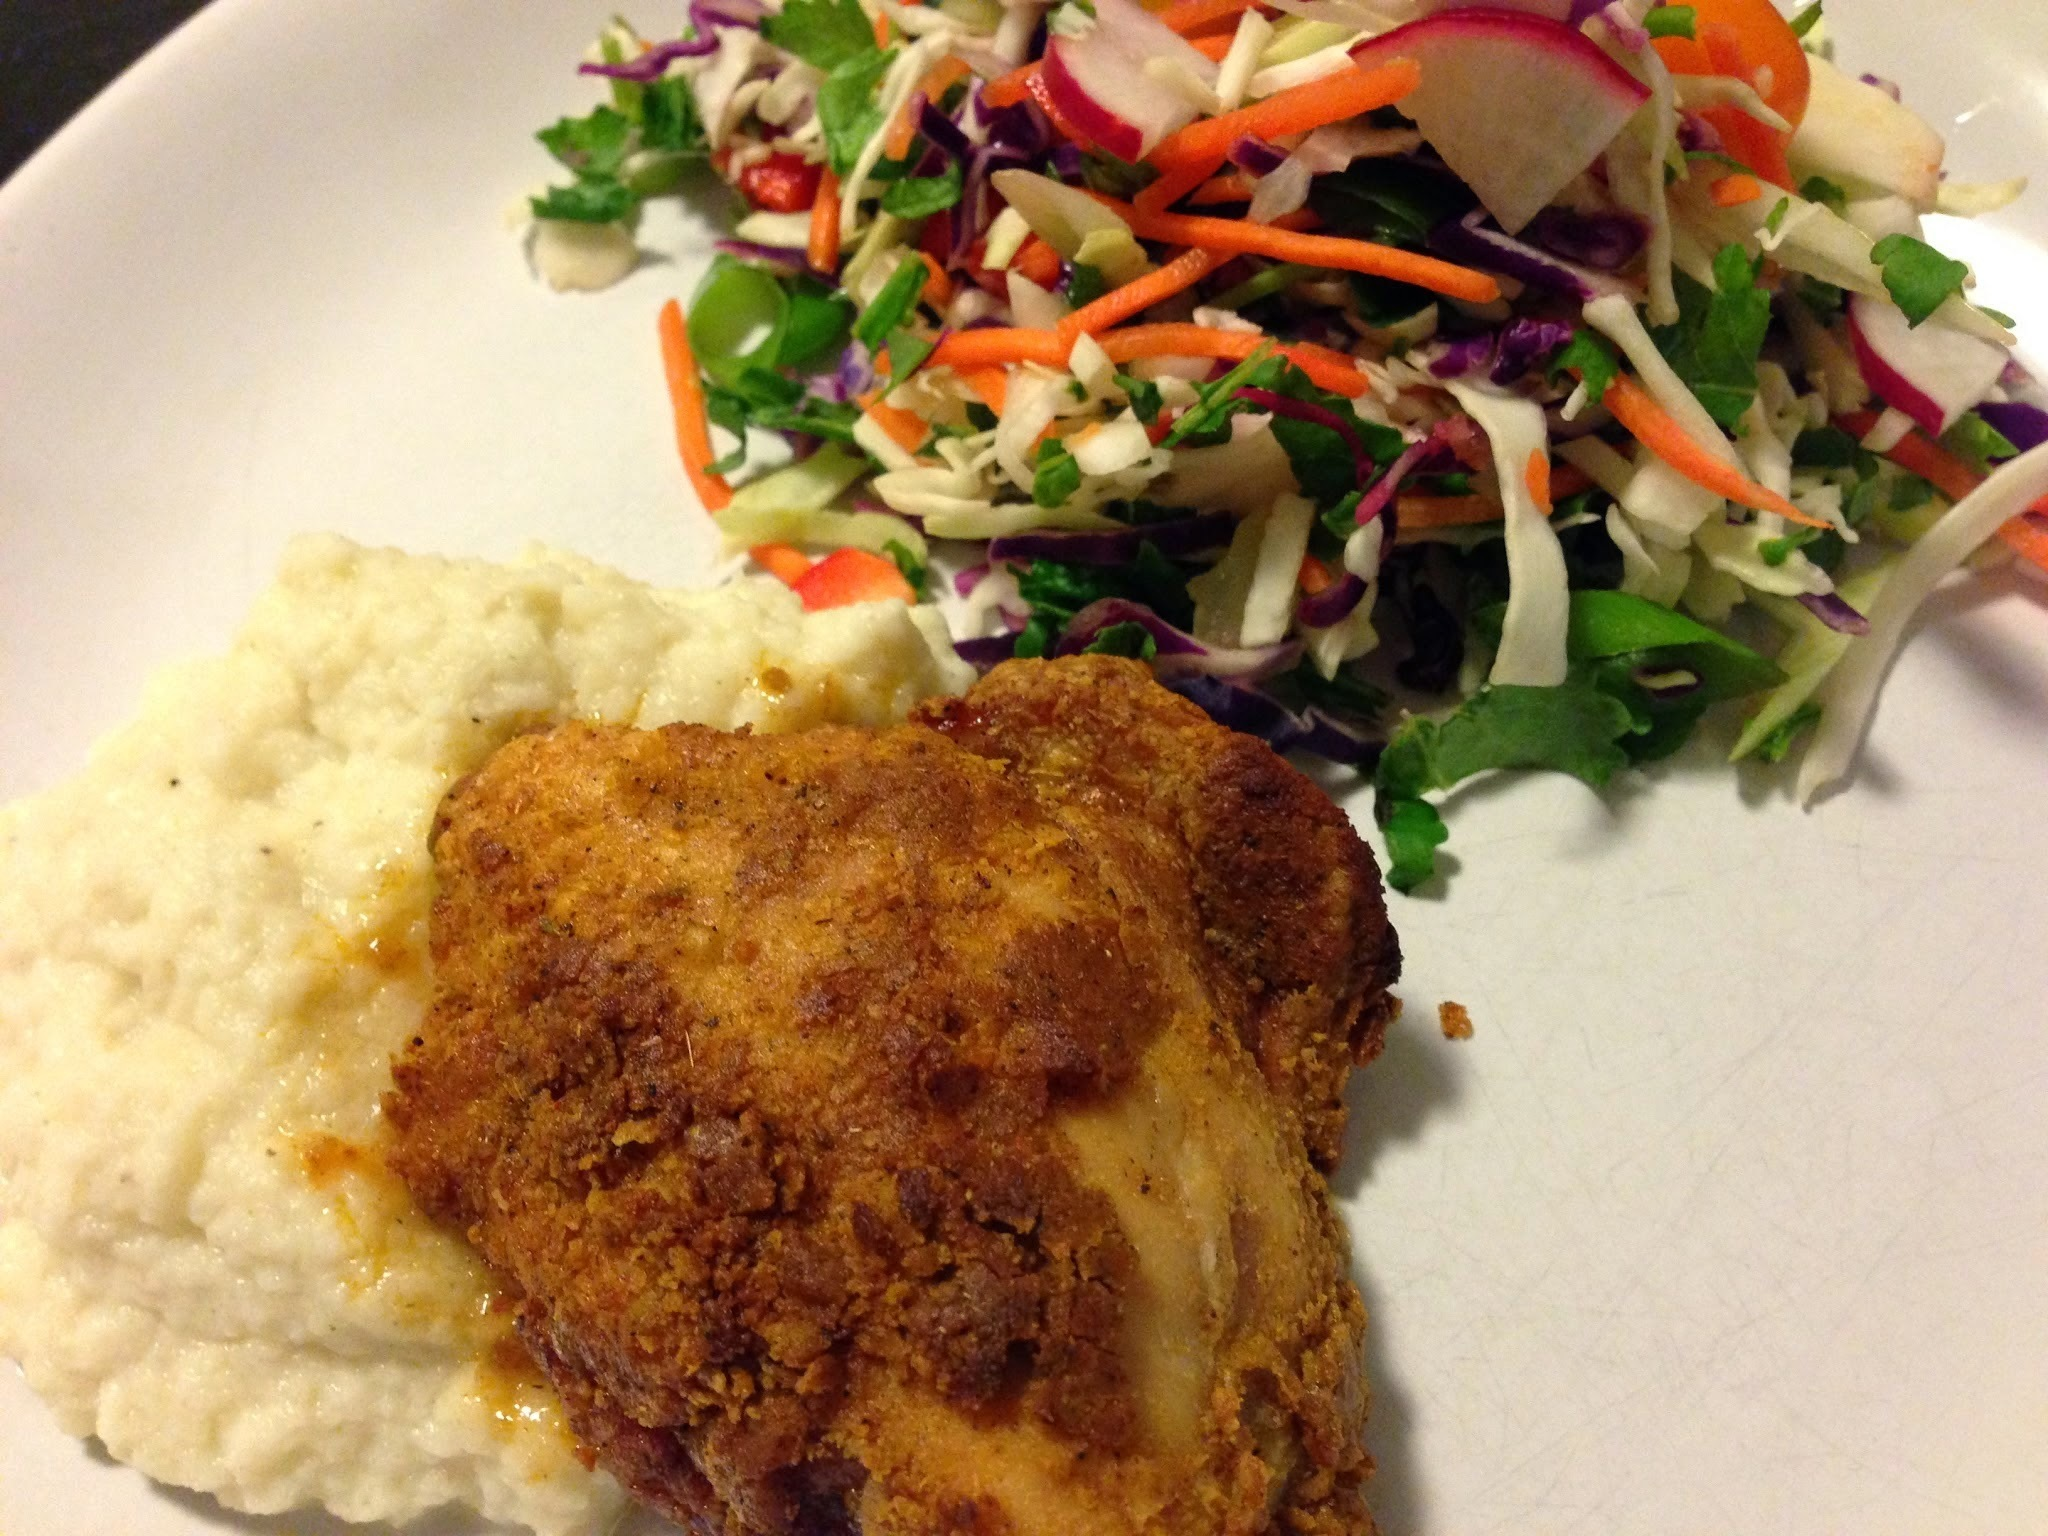 Secret Spice Chicken, Coleslaw, and Mashed Cauliflower - Clean KFC!